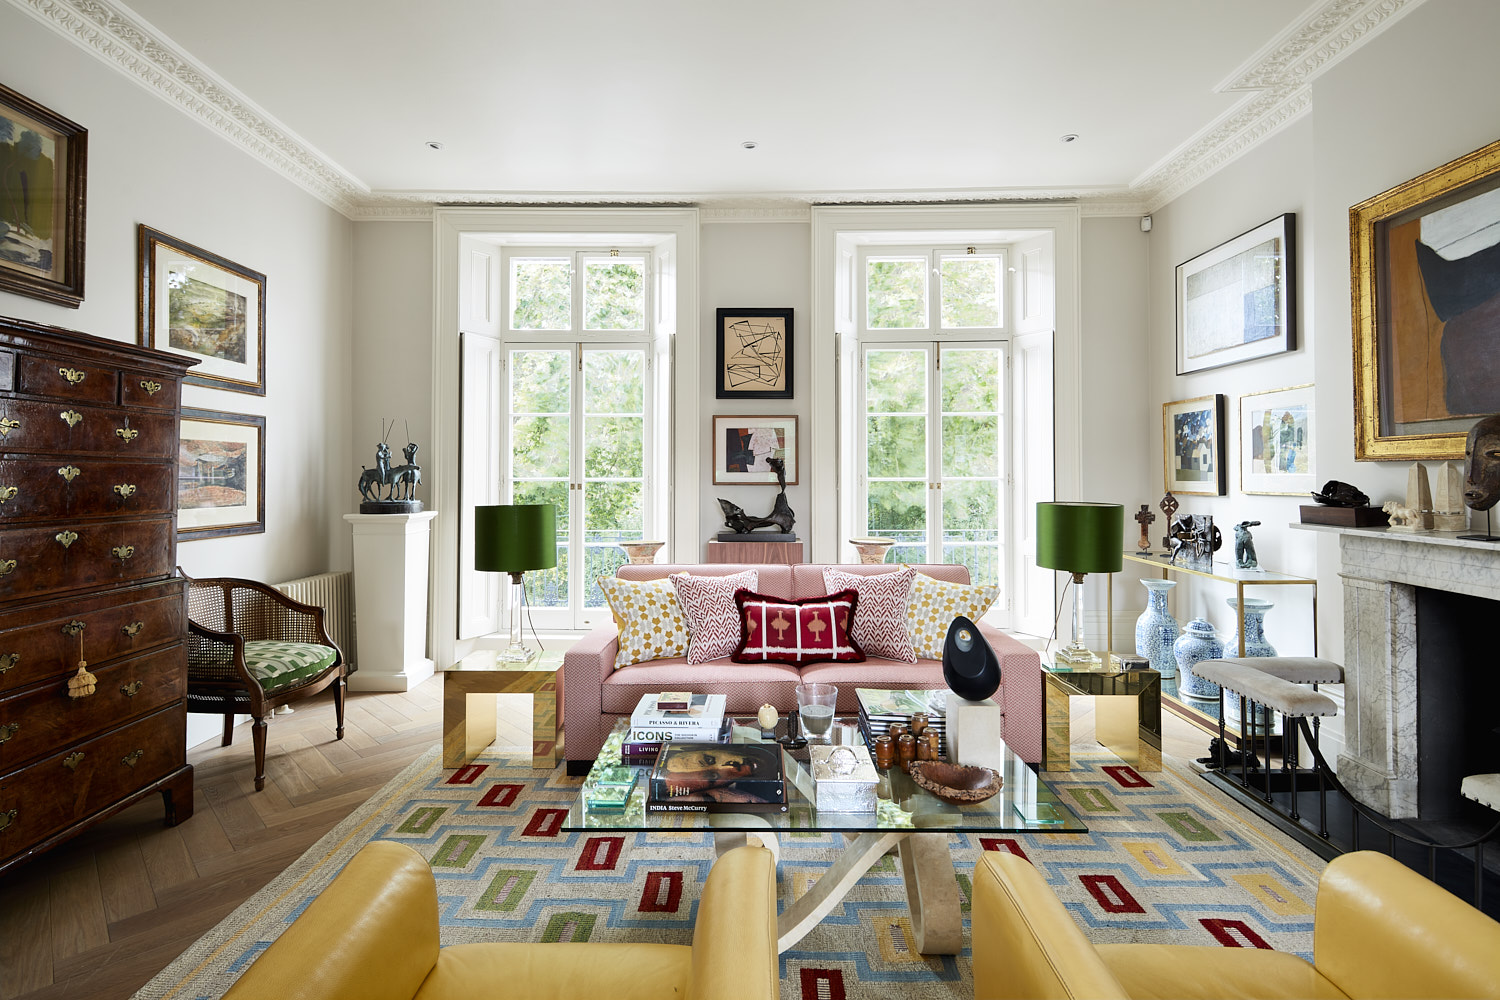 Holland Park - This recently completed family home is a Grade II listed building in Holland Park, London W11. The works involved a full house renovation, measuring 3,615sq.ft, of the 6-storey property which was in need of updating to suit more modern living. _________